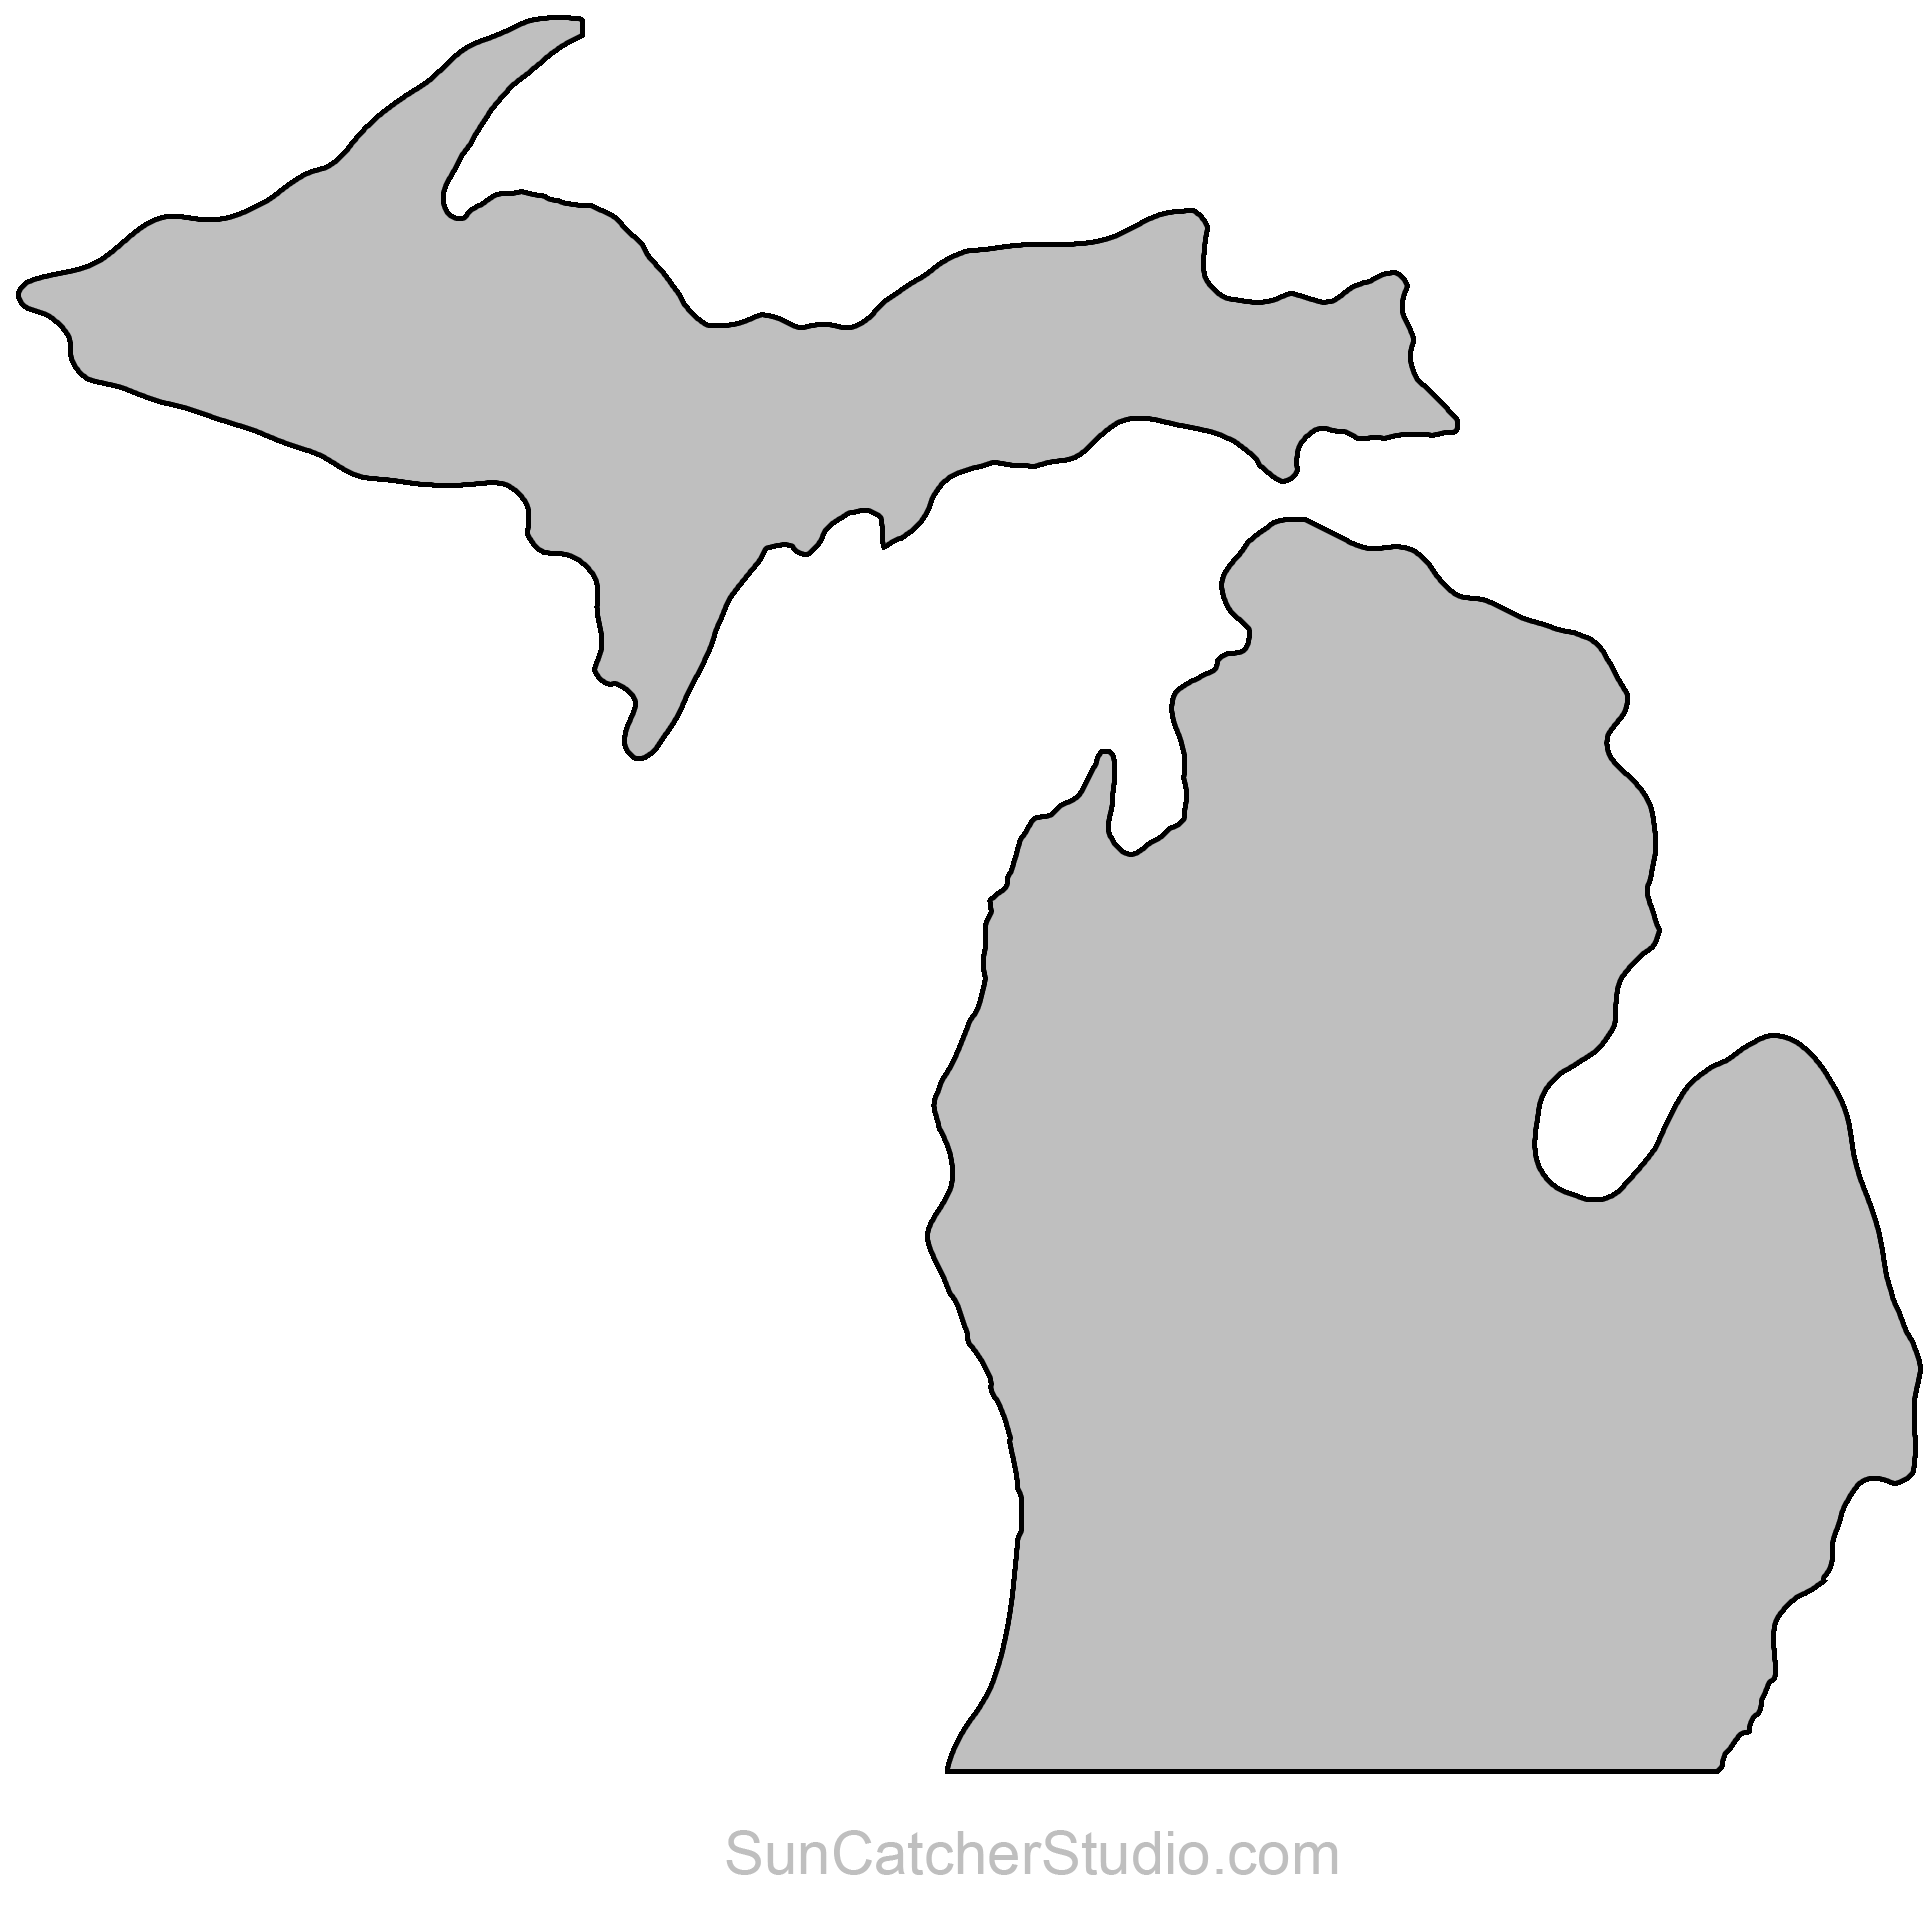 Michigan clipart shape. State outlines maps stencils